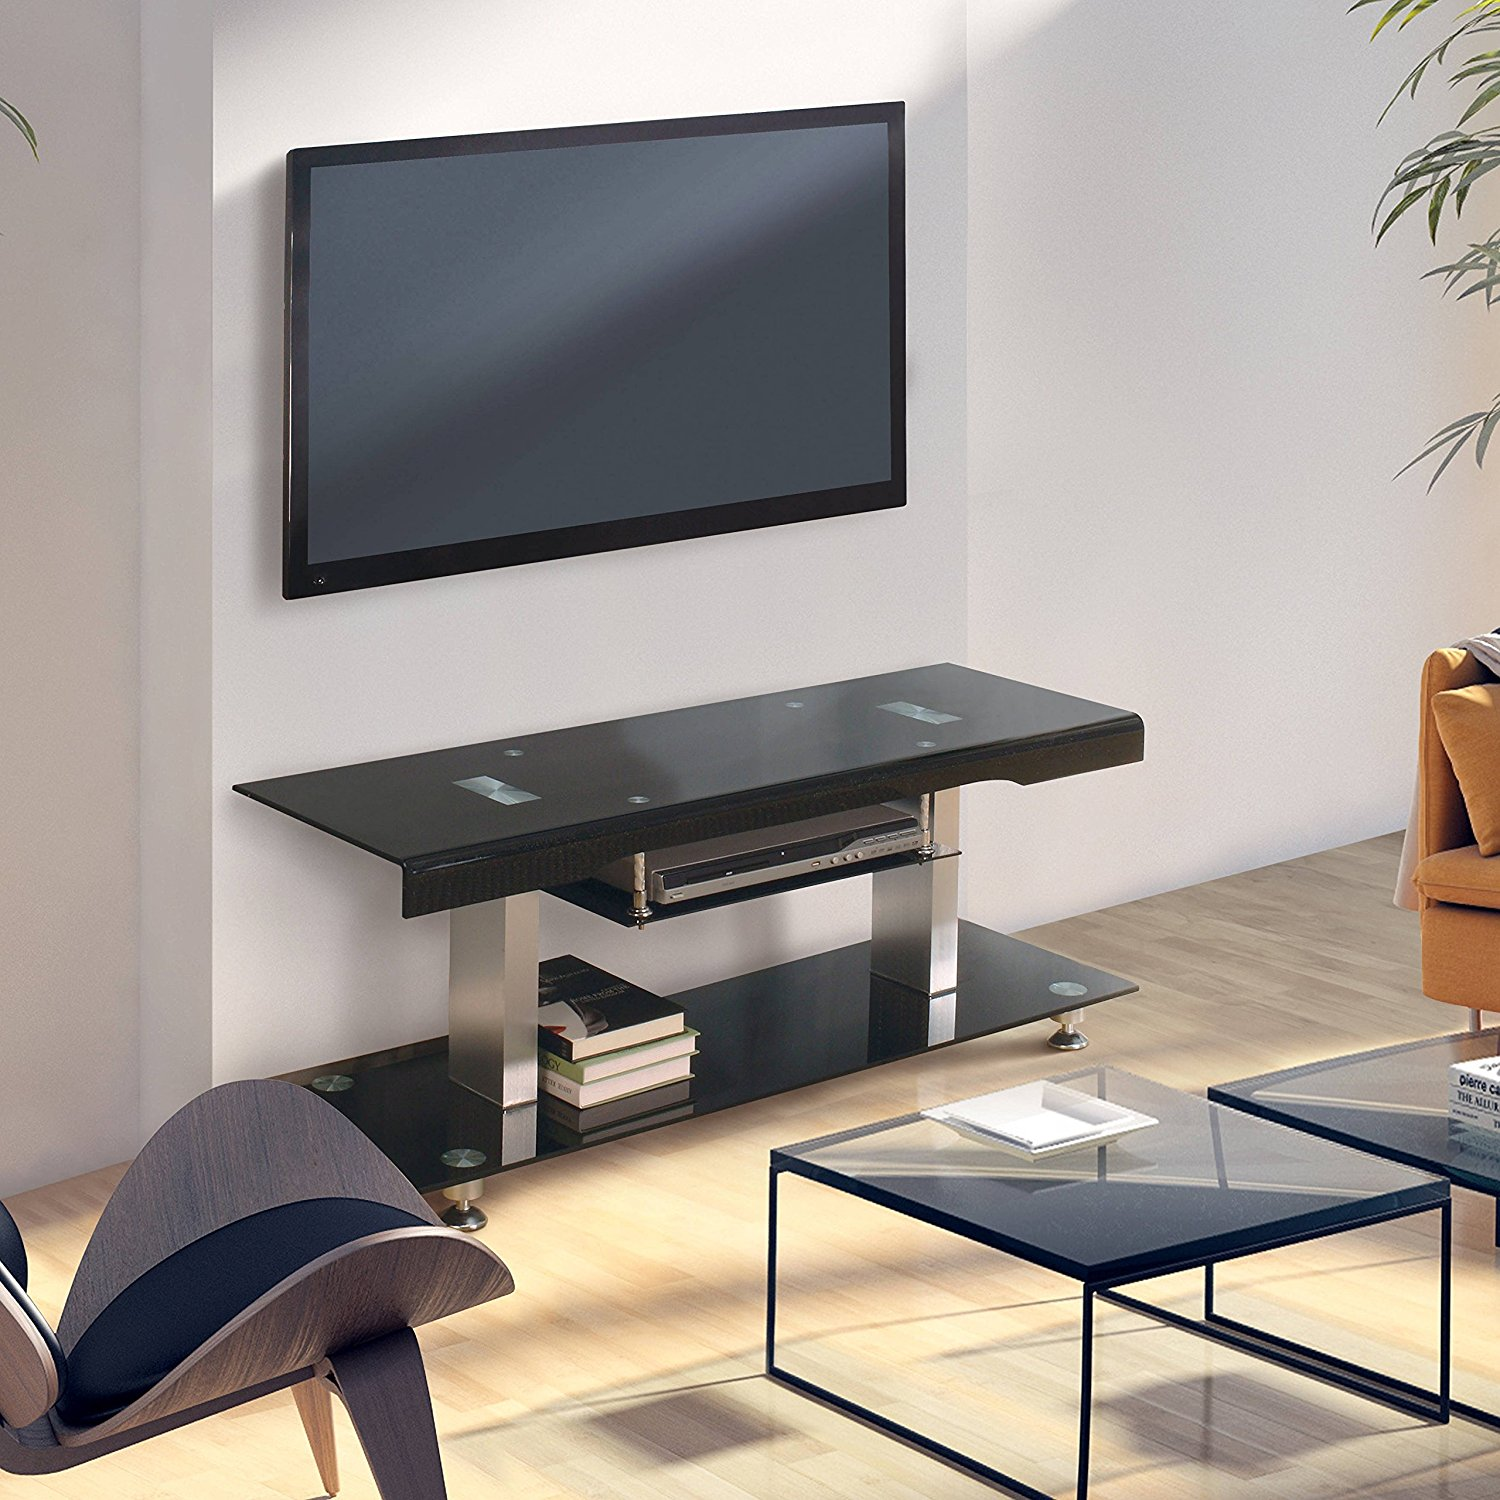 Cheap 60 Inch Glass Tv Stand Find 60 Inch Glass Tv Stand Deals On